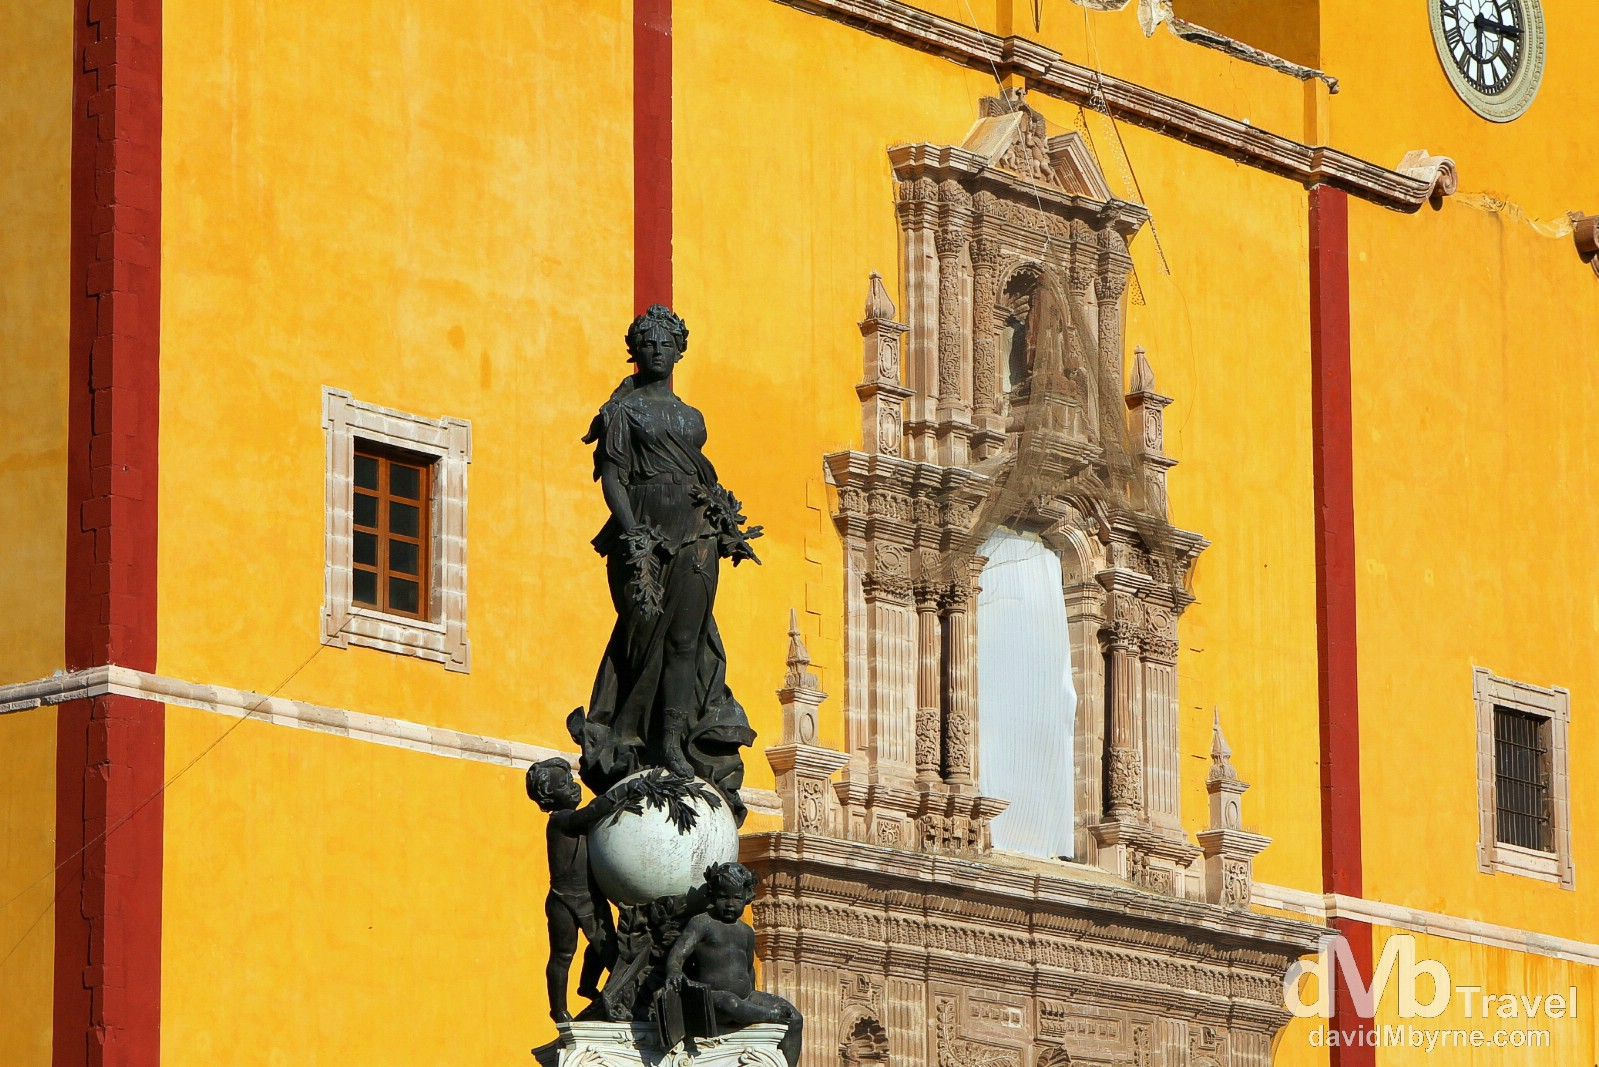 The centre of the modern city of Guanajuato is the Plaza de la Paz (Plaza of Peace), also known as the Plaza Mayor (Main Plaza). Since the colonial period, the richest of the city's families located their main homes here, along with government buildings and the parish church, now a basilica, Basilica de Nuestra Senora de Quanajuato. Built between 1671 to 1696, it houses a 1000-year-old statue donated by Spanish King Charles I in a bid to protect it from the Arab invasion of Spain. The statue fronting the church resides in the centre of the small plaza garden. It's a sculpture of a woman which represents peace; its placement here in the late 19th century caused the official name to change to Plaza de la Paz. Today, the plaza is surrounded by the basilica, other churches, government and commercial buildings, many of which were once mansions. Guanajuato, Mexico. April 22nd 2013.